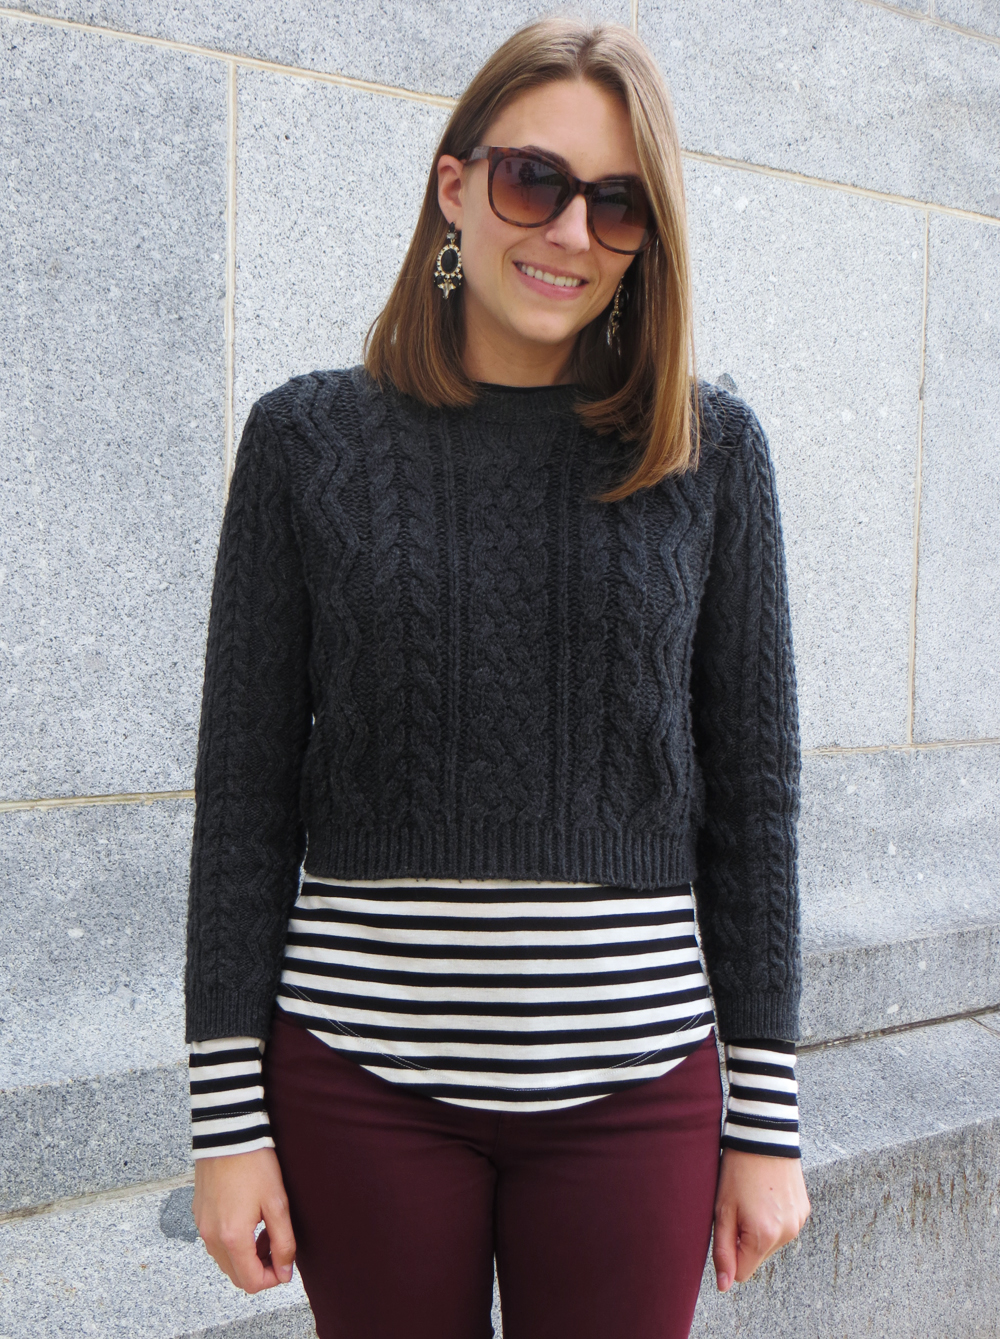 Cropped cable knit sweater, striped tee, statement earrings -- Cotton Cashmere Cat Hair